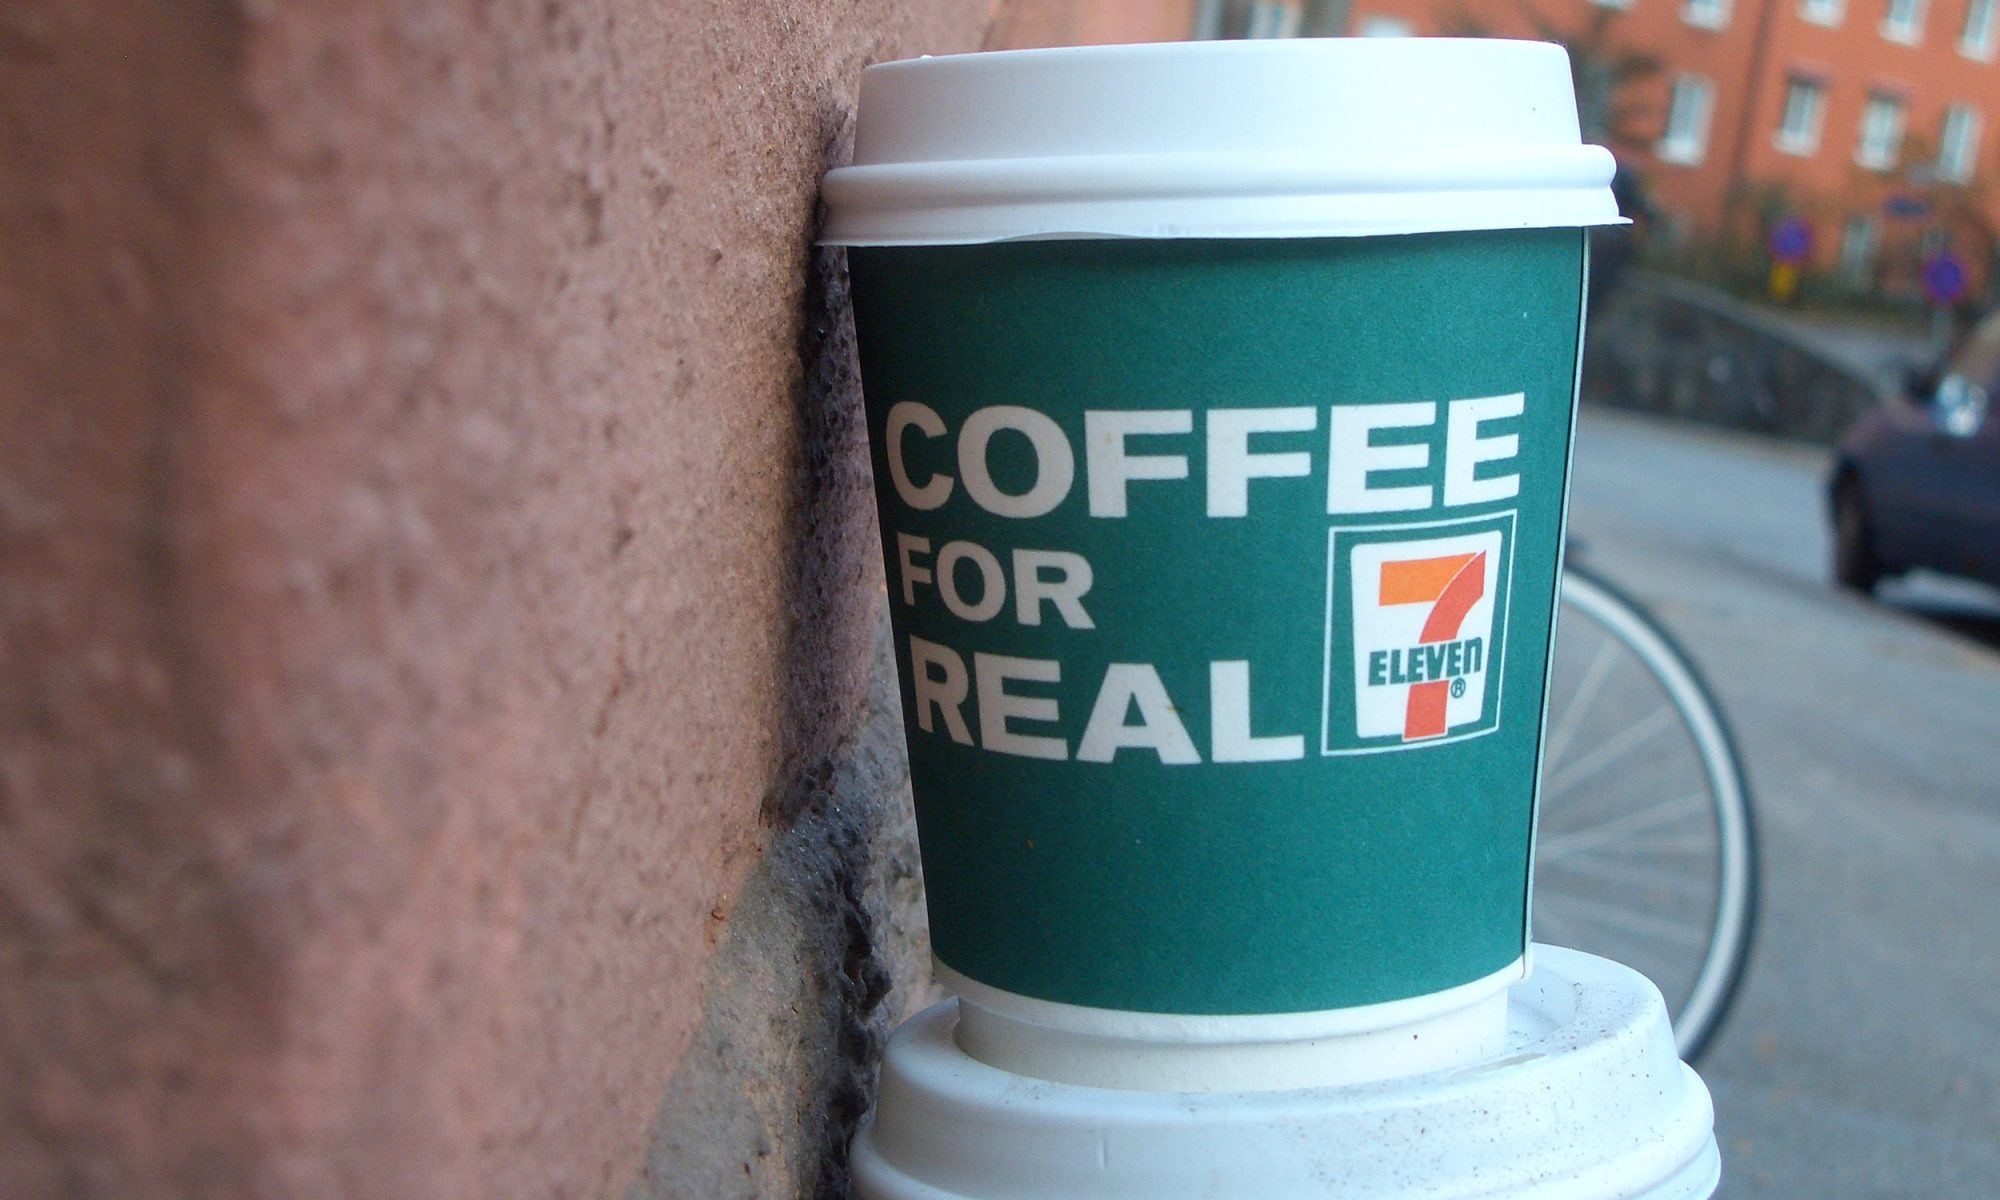 EC: 7-Eleven Has Sustainably Sourced, Single-Origin Coffee Now